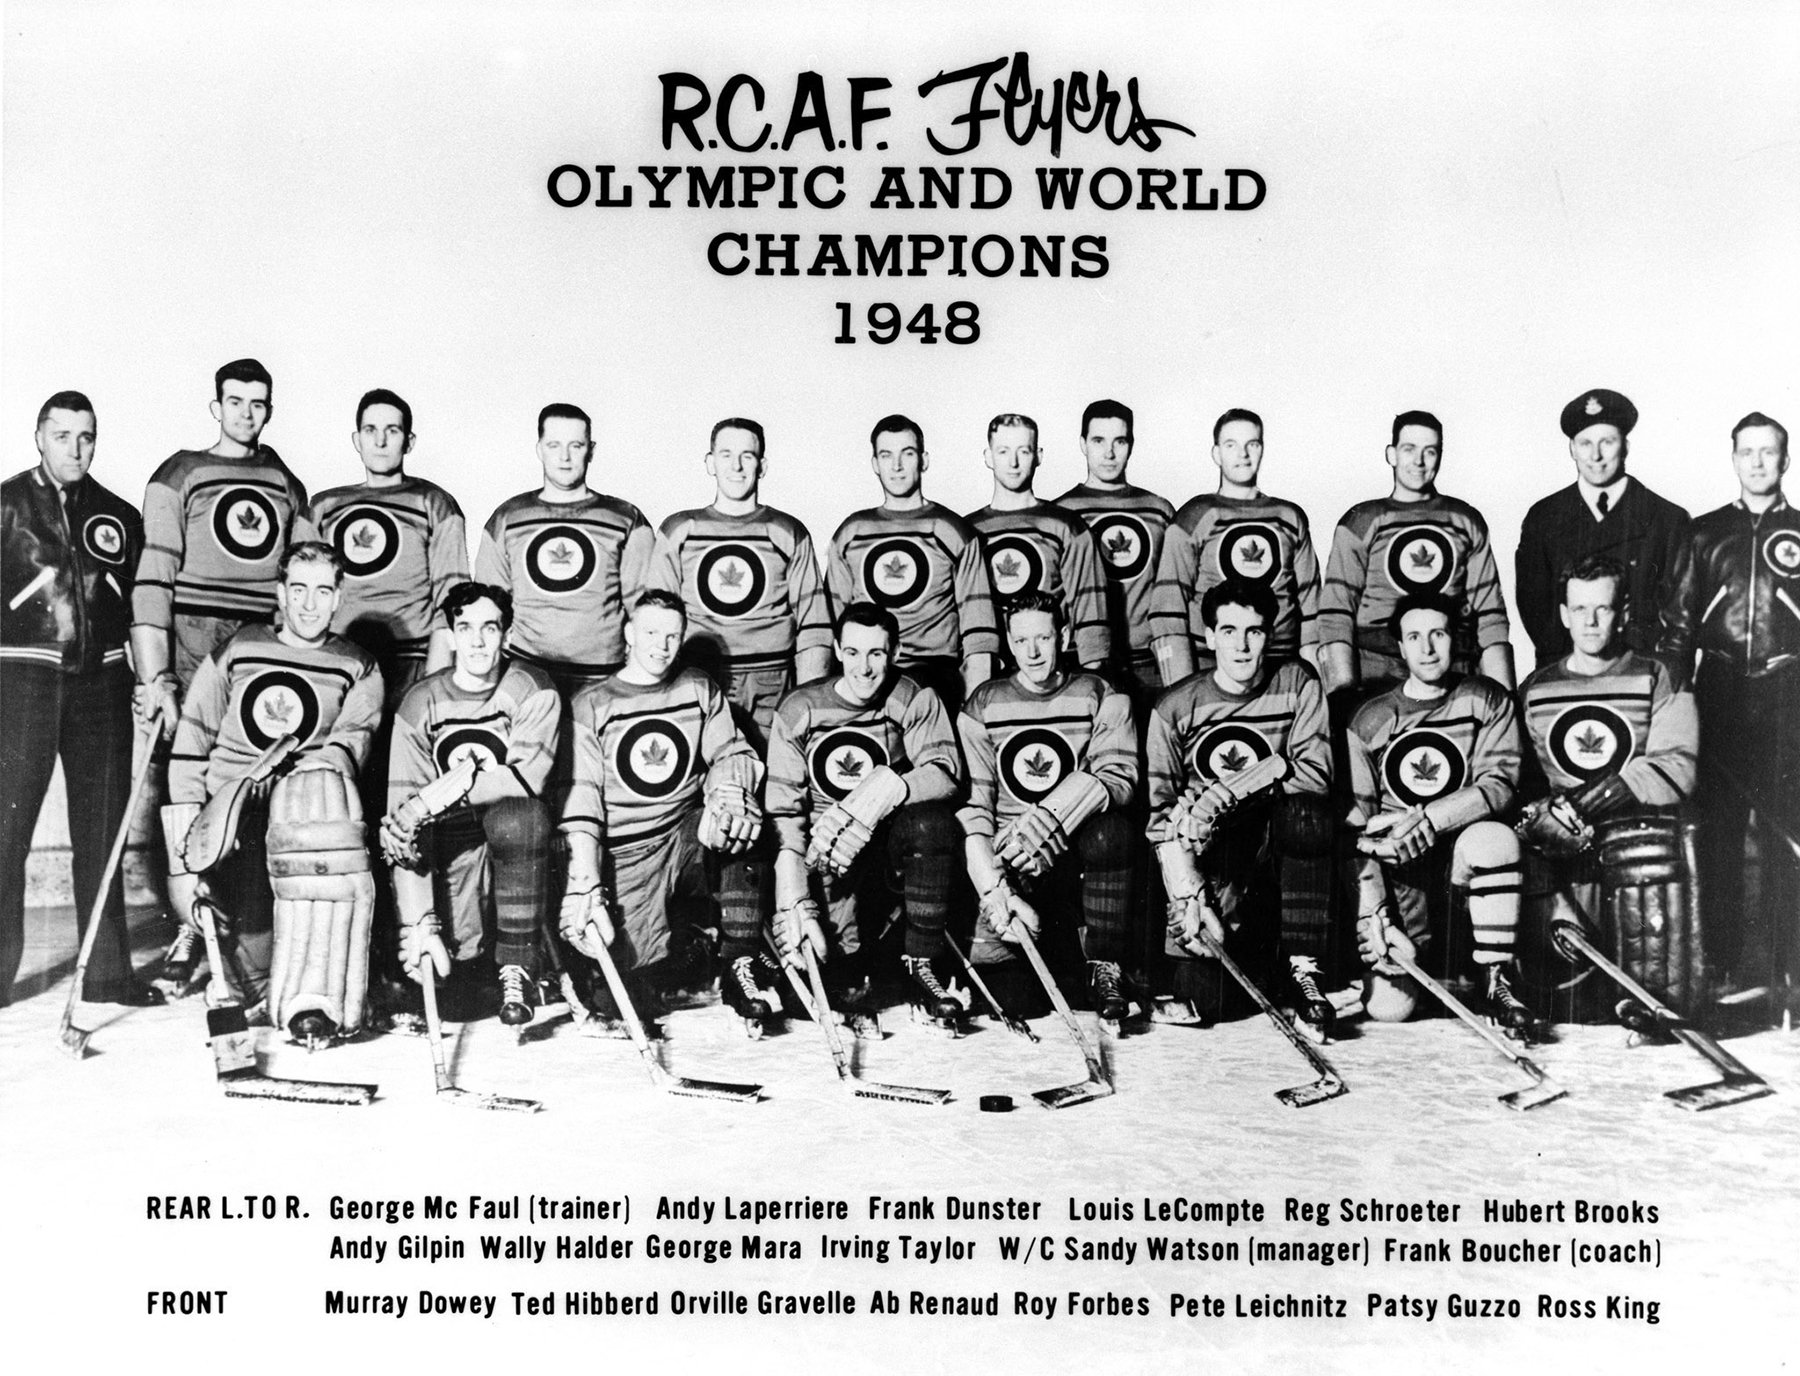 The 1948 Olympic champion RCAF Flyers hockey team members are, front, from left: Murray Dowey, Ted Hibberd, Orville Gravelle, Ab Renaud, Roy Forbes, Pete Leichnitz, Patsy Guzzo and Ross King; and back, from left: George McFaul (trainer), Andy Laperriere, Frank Dunster, Louis LeCompte, Reg Schroeter, Hubert Brooks, Andy Gilpin, Wally Halder, George Mara, Irving Taylor, Sandy Watson (manager) and Frank Boucher (coach). PHOTO: DND Archives, PMR-93-353